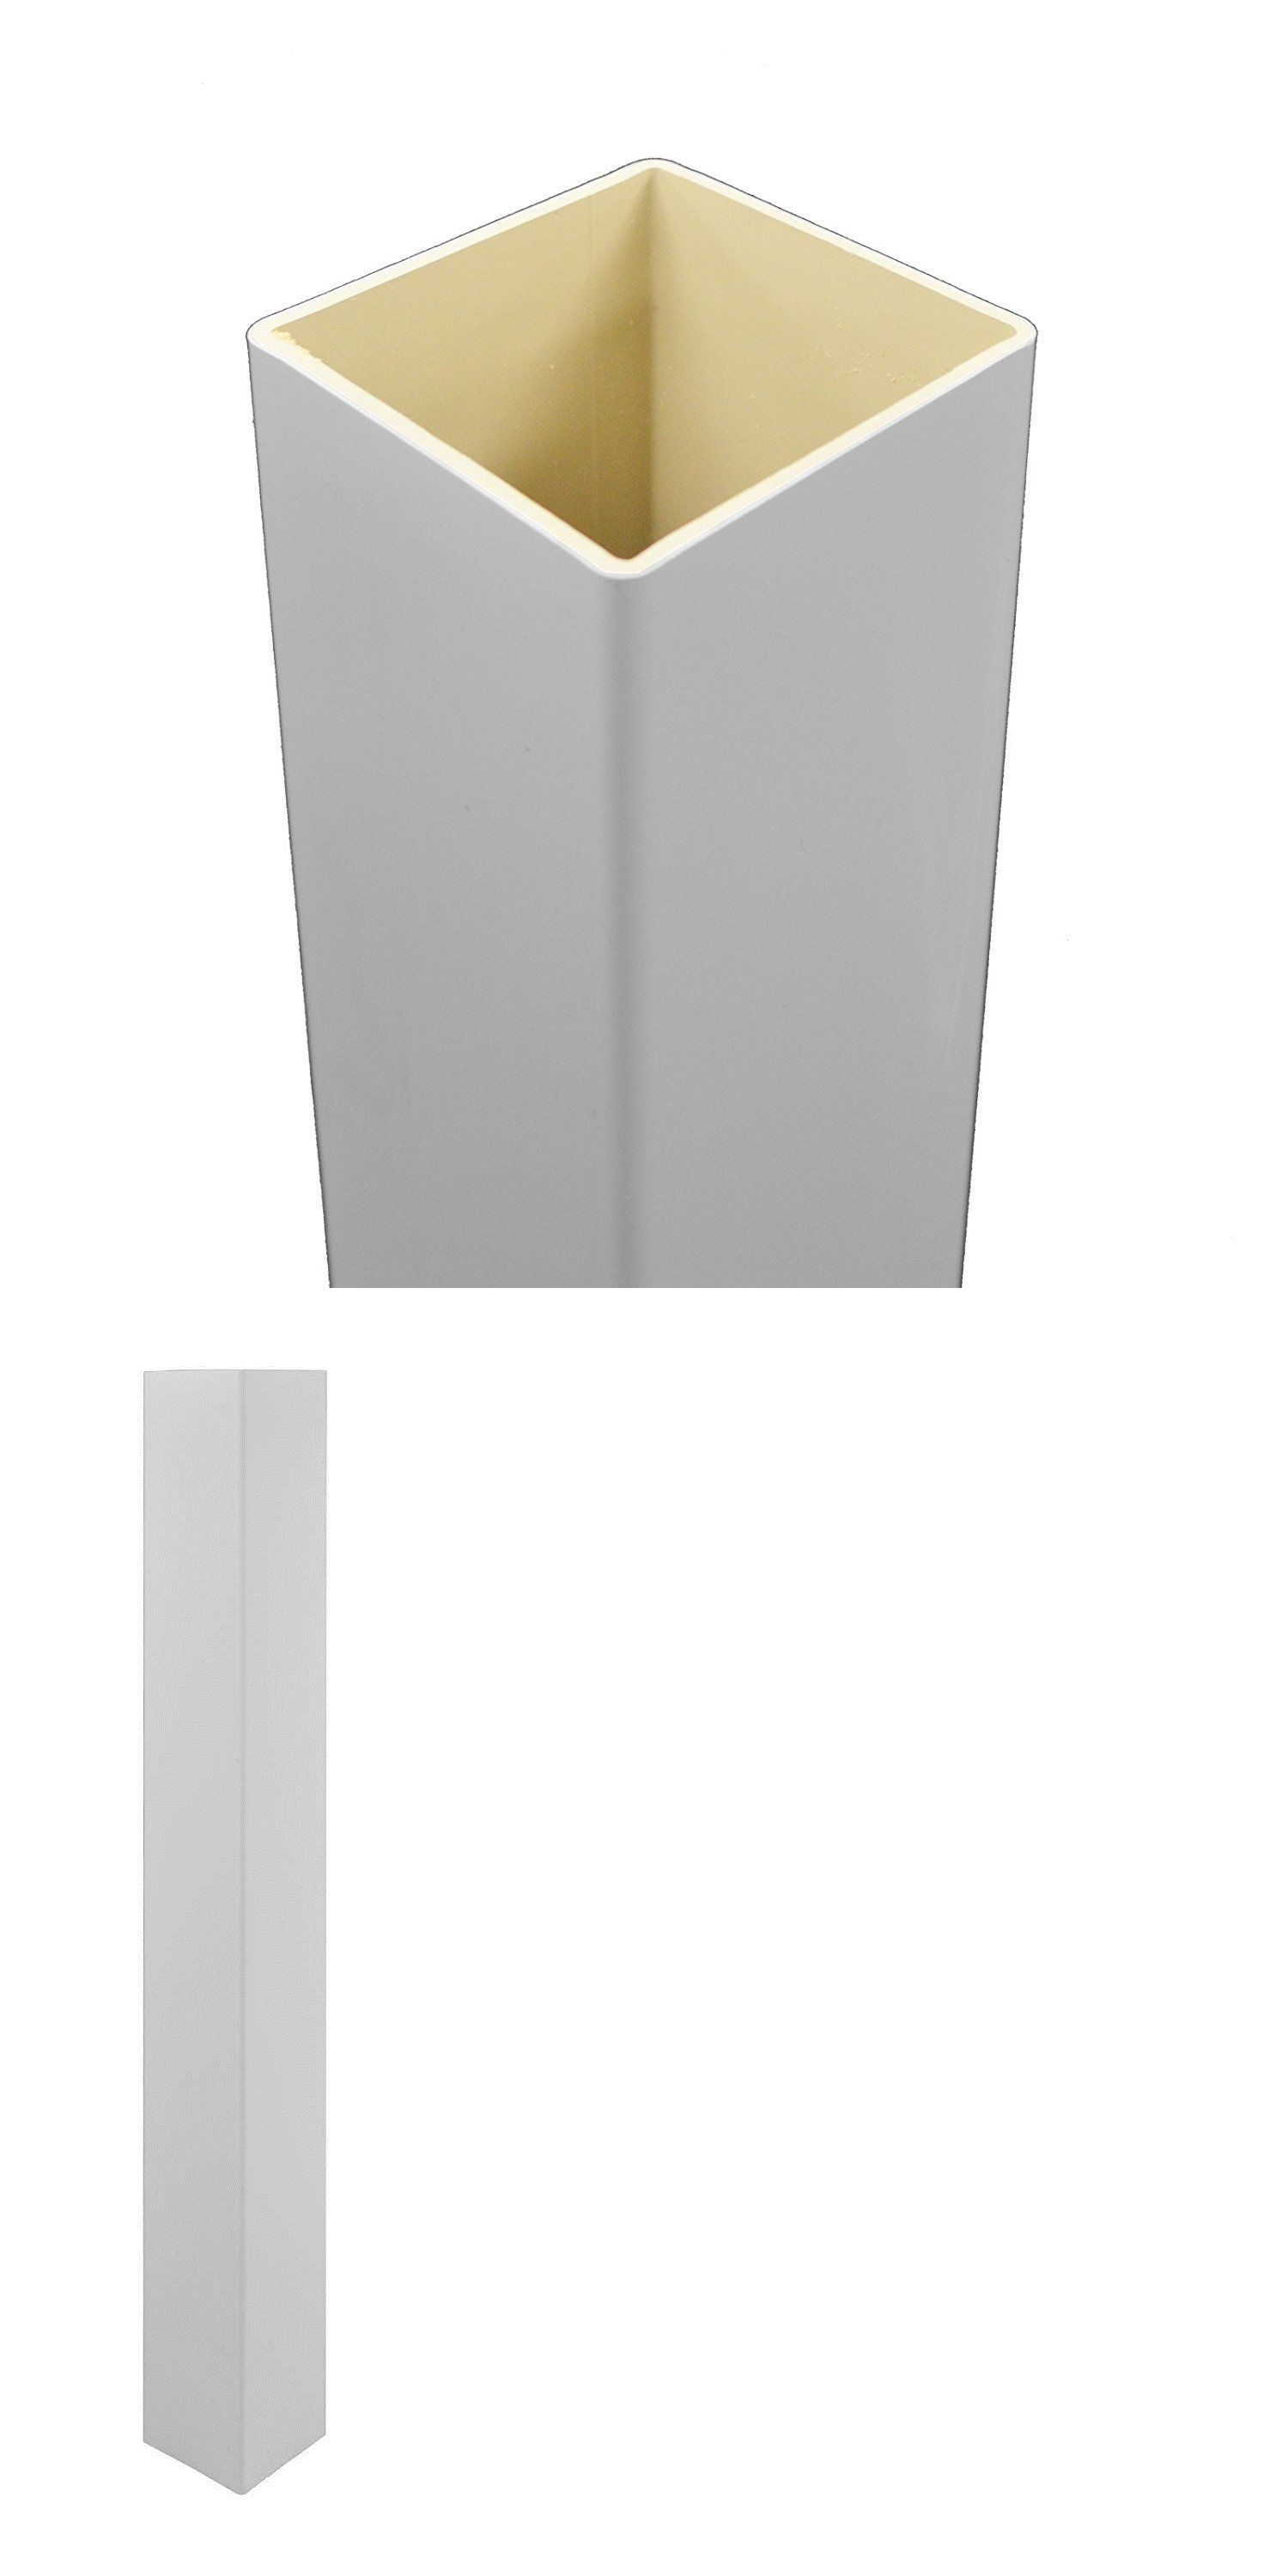 Other Garden Fencing 177033 White Pvc Vinyl True 4 Inch X 4 Inch X 96 Tall Post Sleeve Single Pack Buy It Now Only Vinyl Fence Pvc Vinyl Post Sleeve